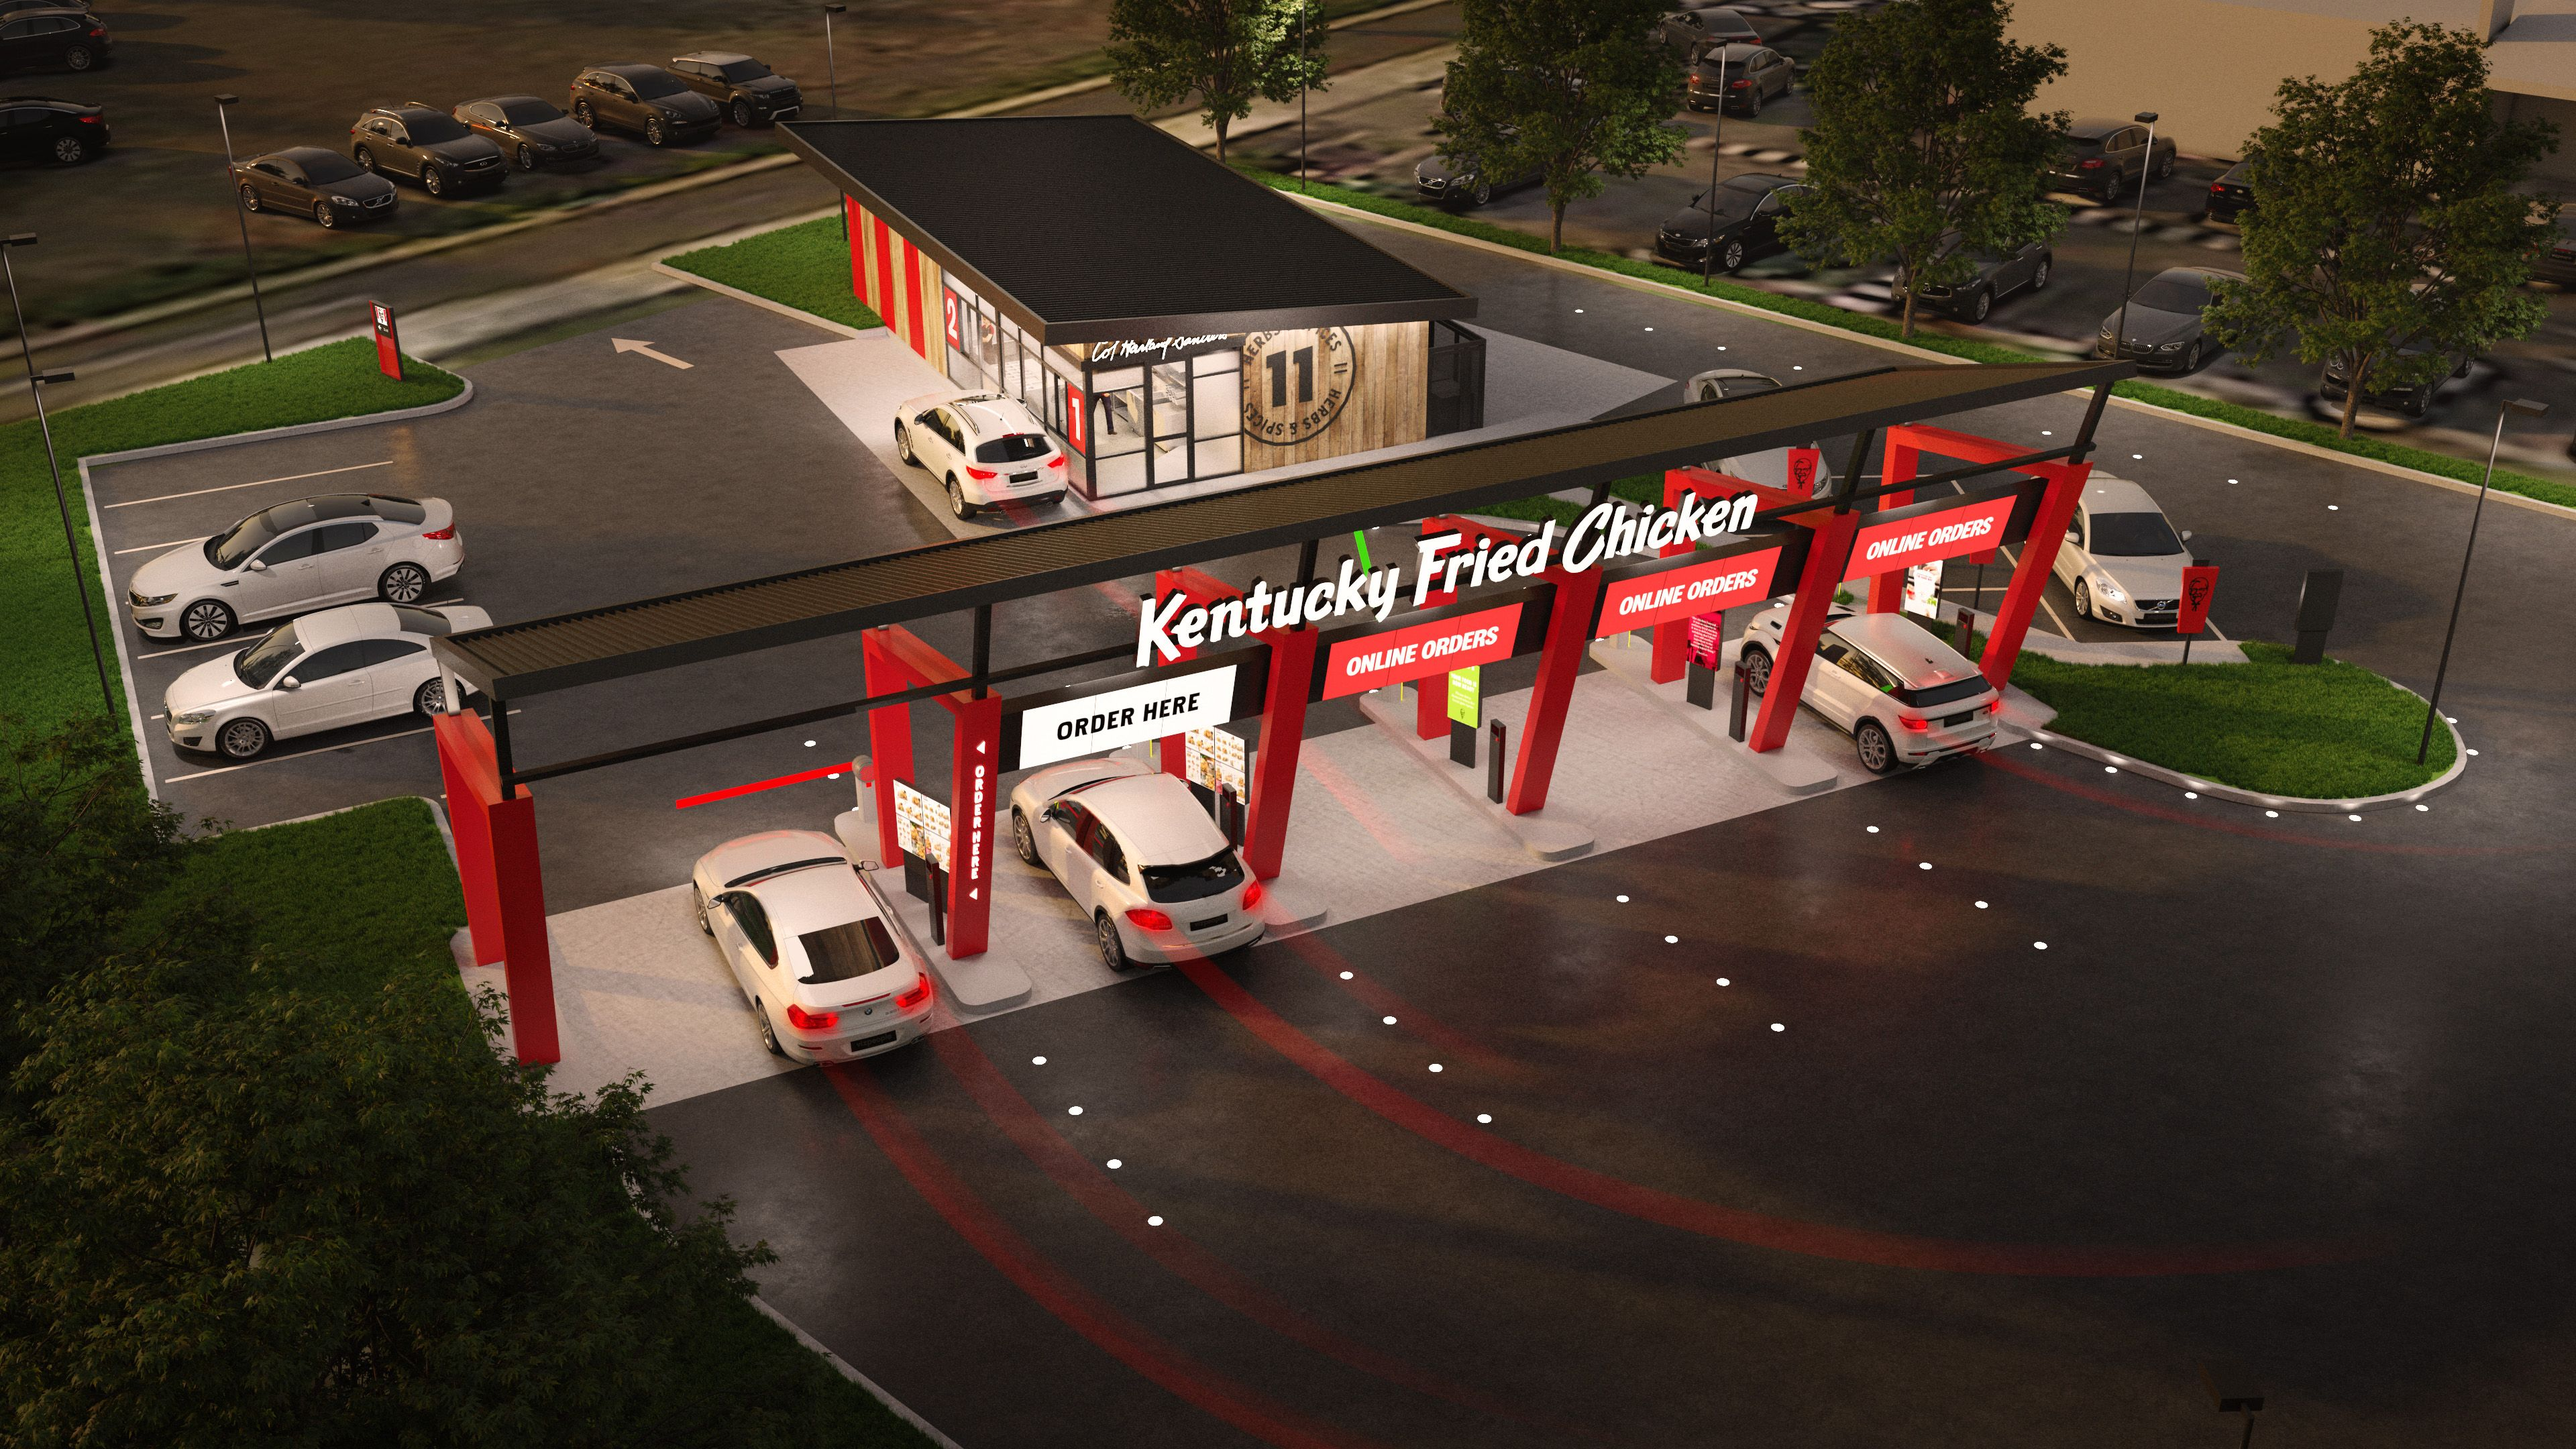 KFC drive-through only store concept | Inside Franchise Business